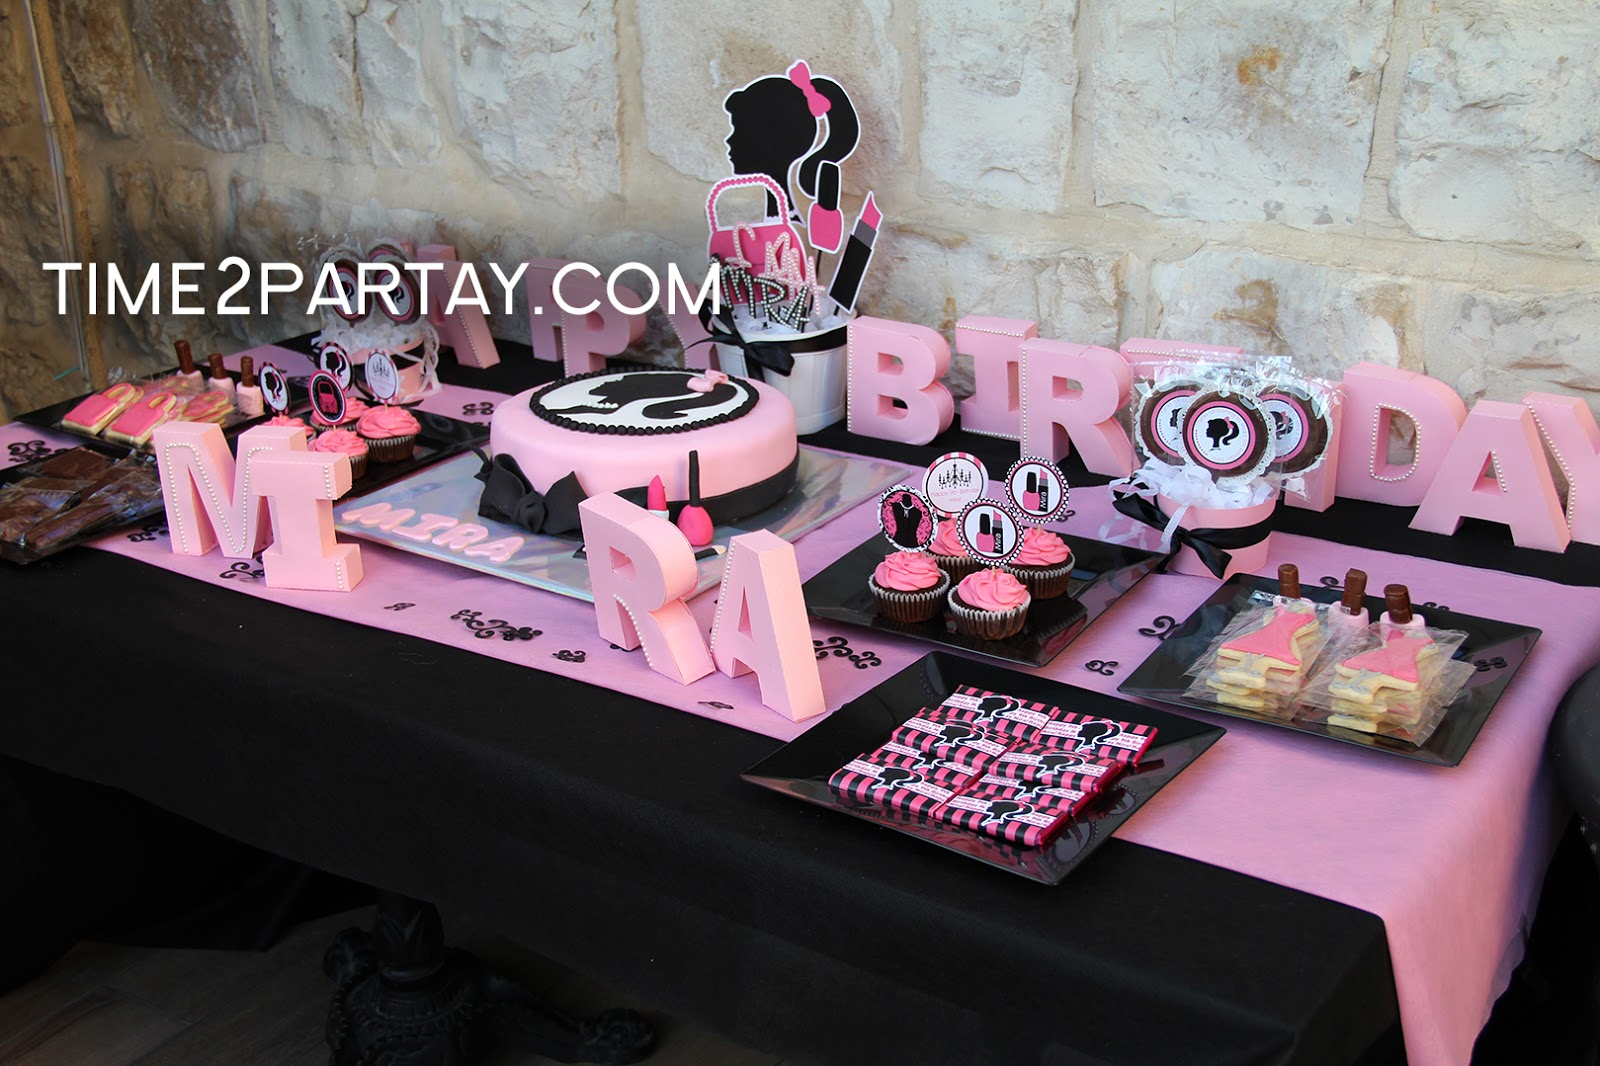 A Fashion Amp Makeup Themed Birthday Party Time2partay Com